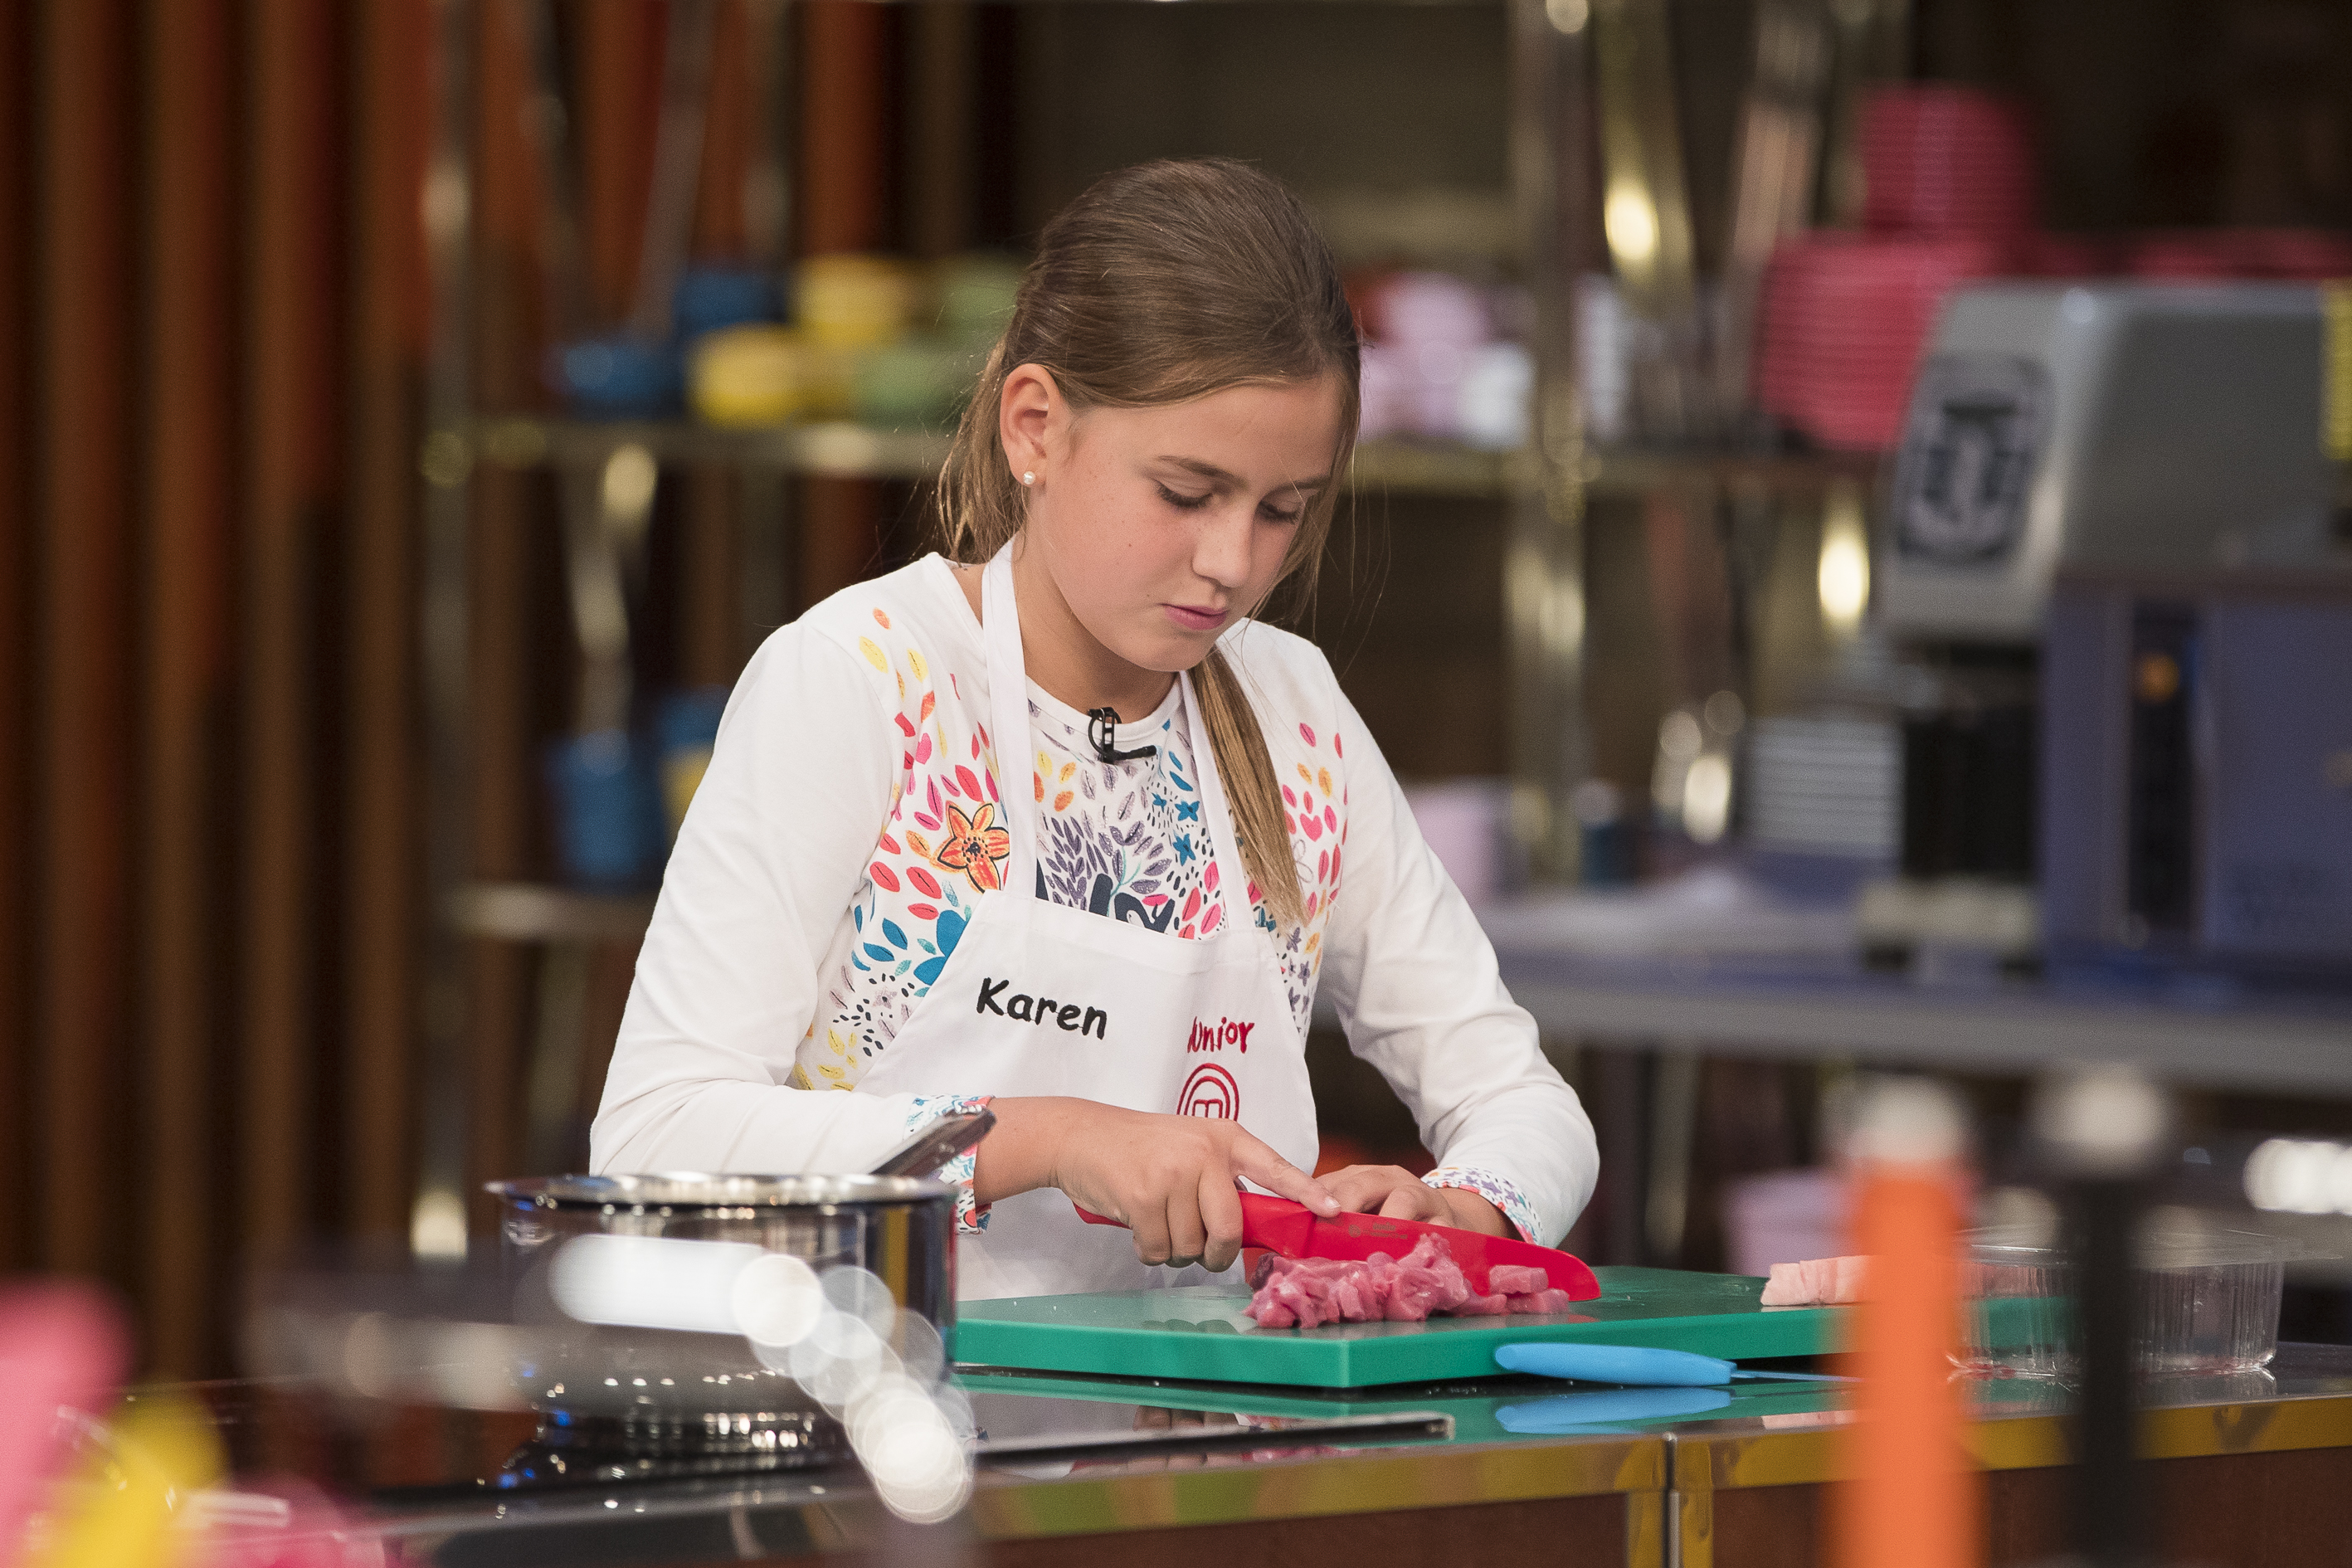 In love with Karen - Masterchef Junior 5